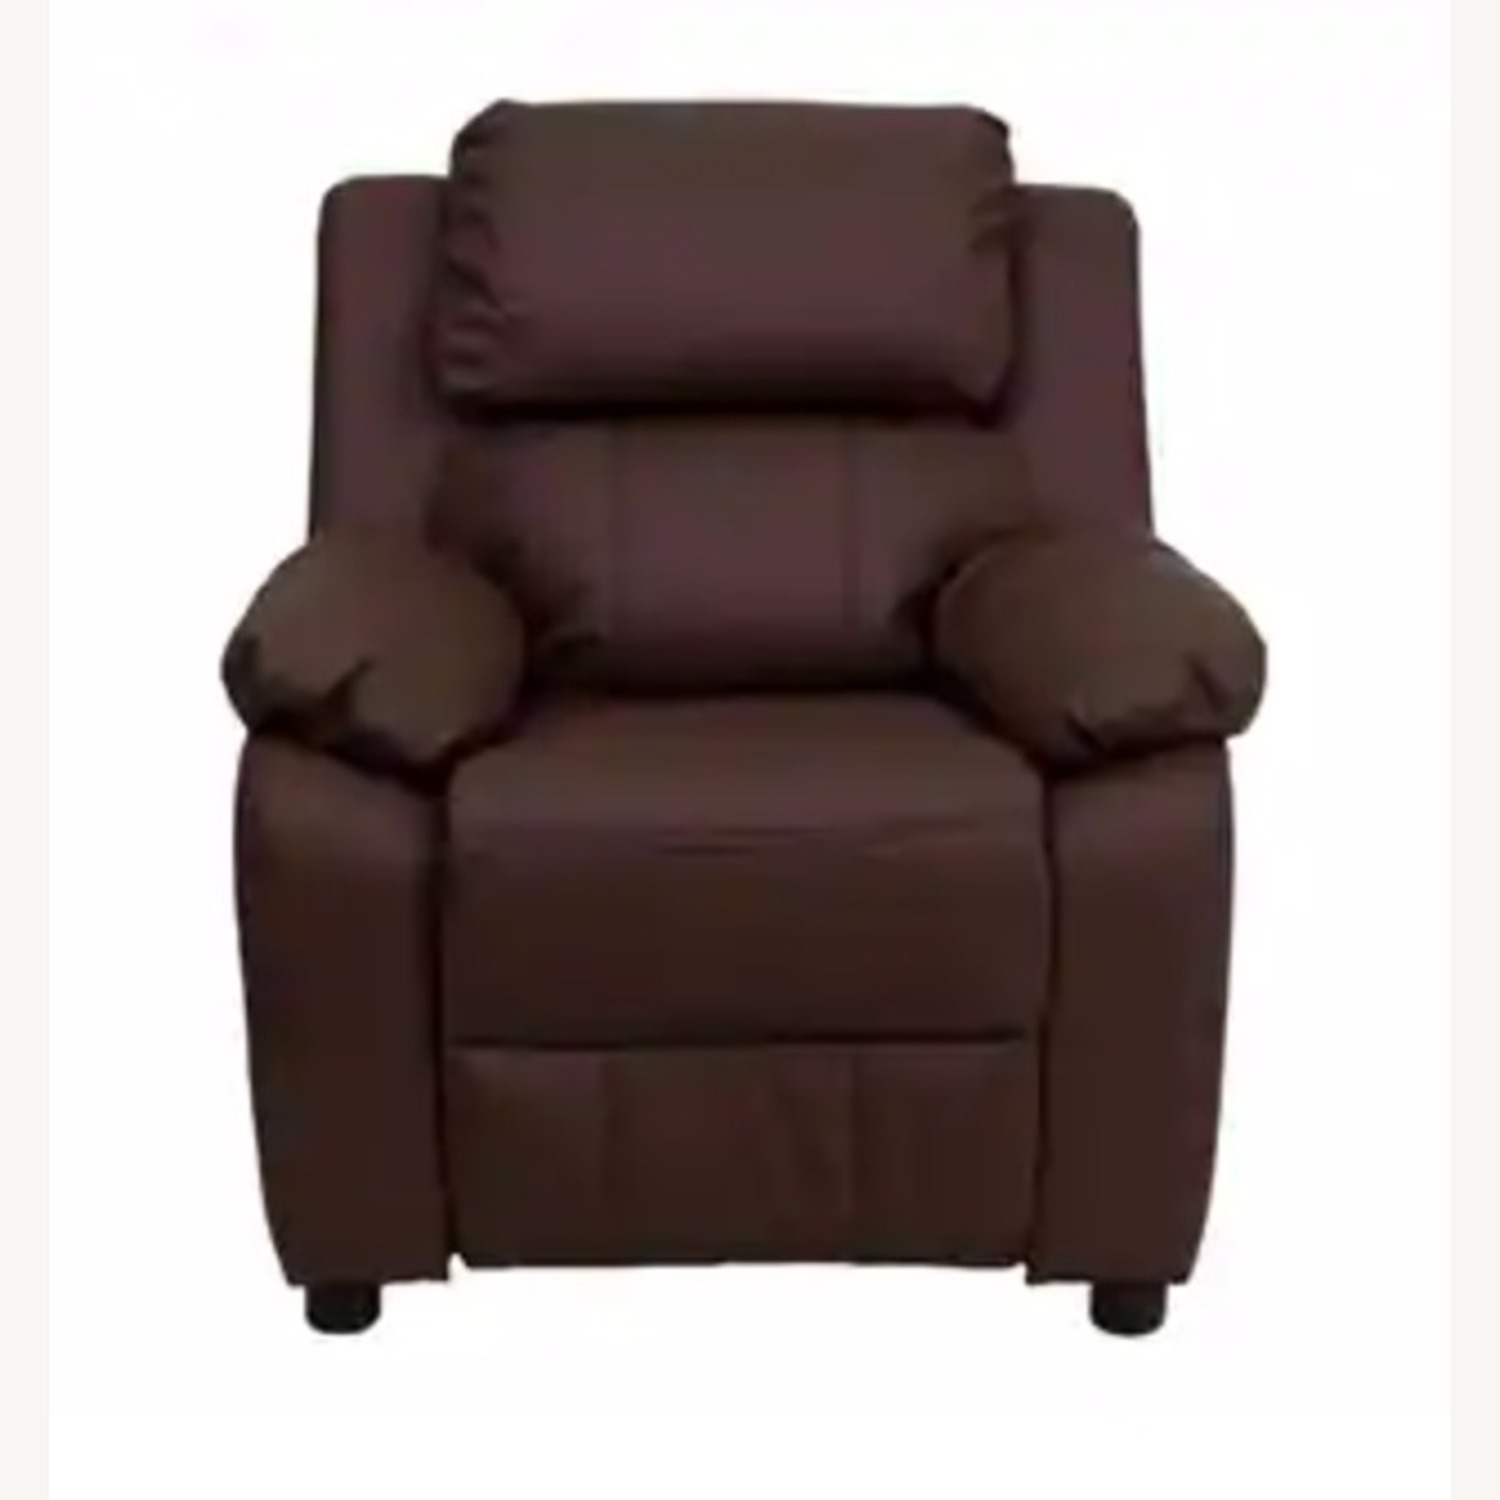 Wayfair Kids Leather Recliner - image-1